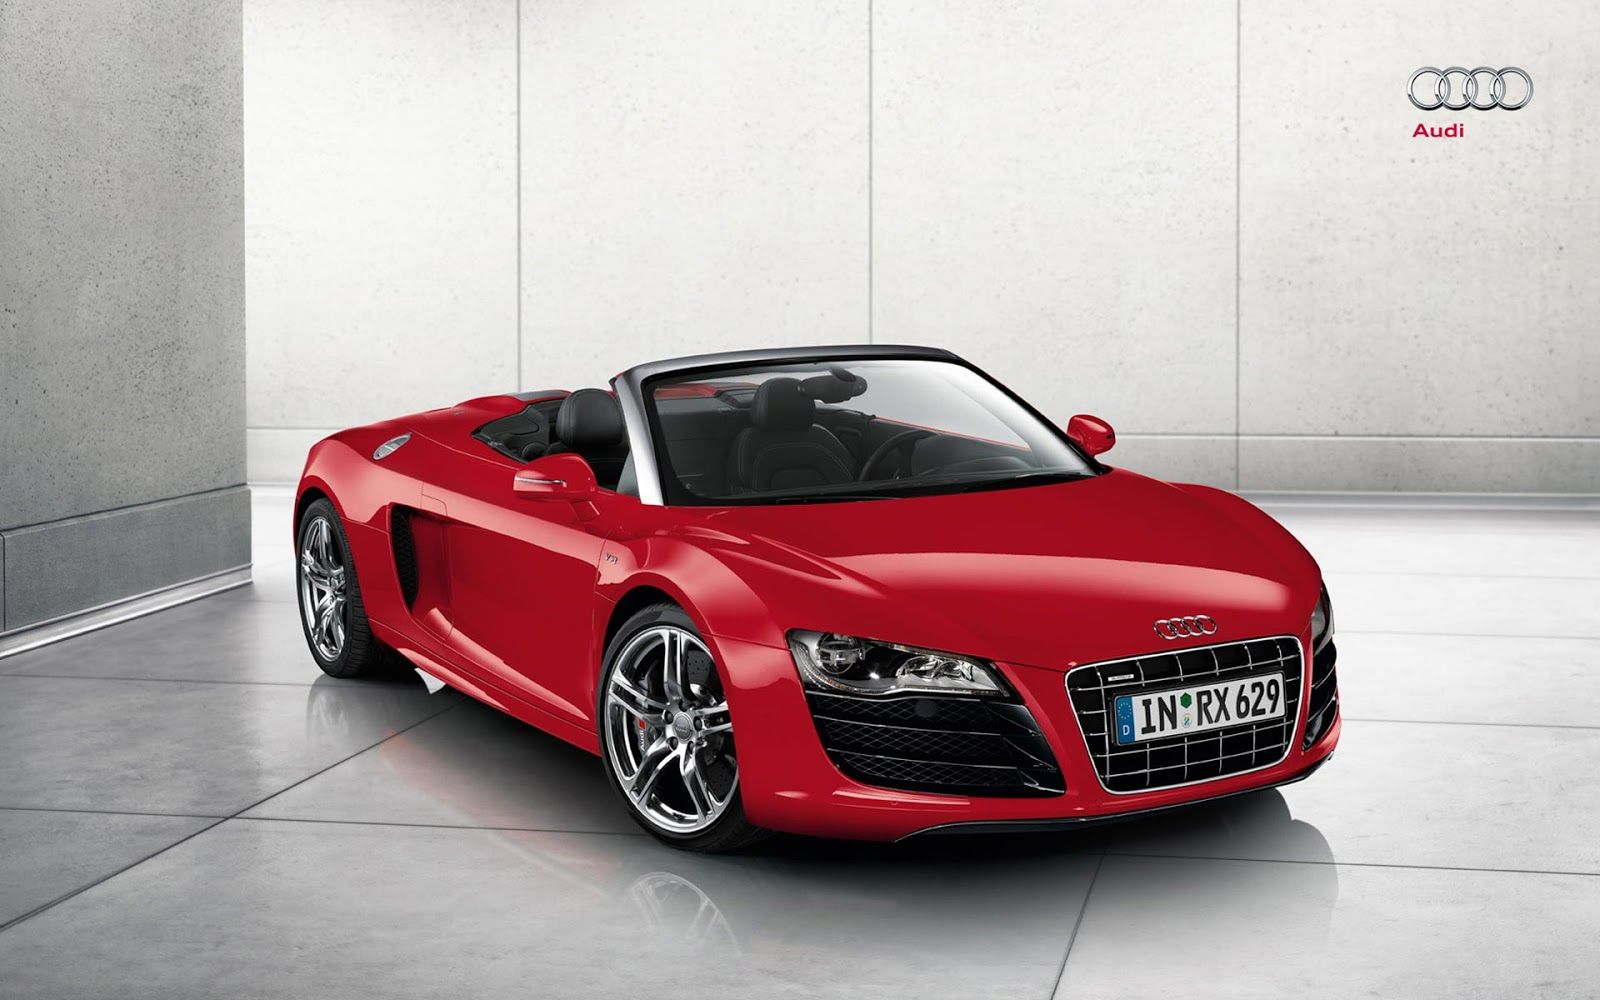 Red Audi Convertible Storyboard For Stefano Paturi Pinterest - Audi all cars name list